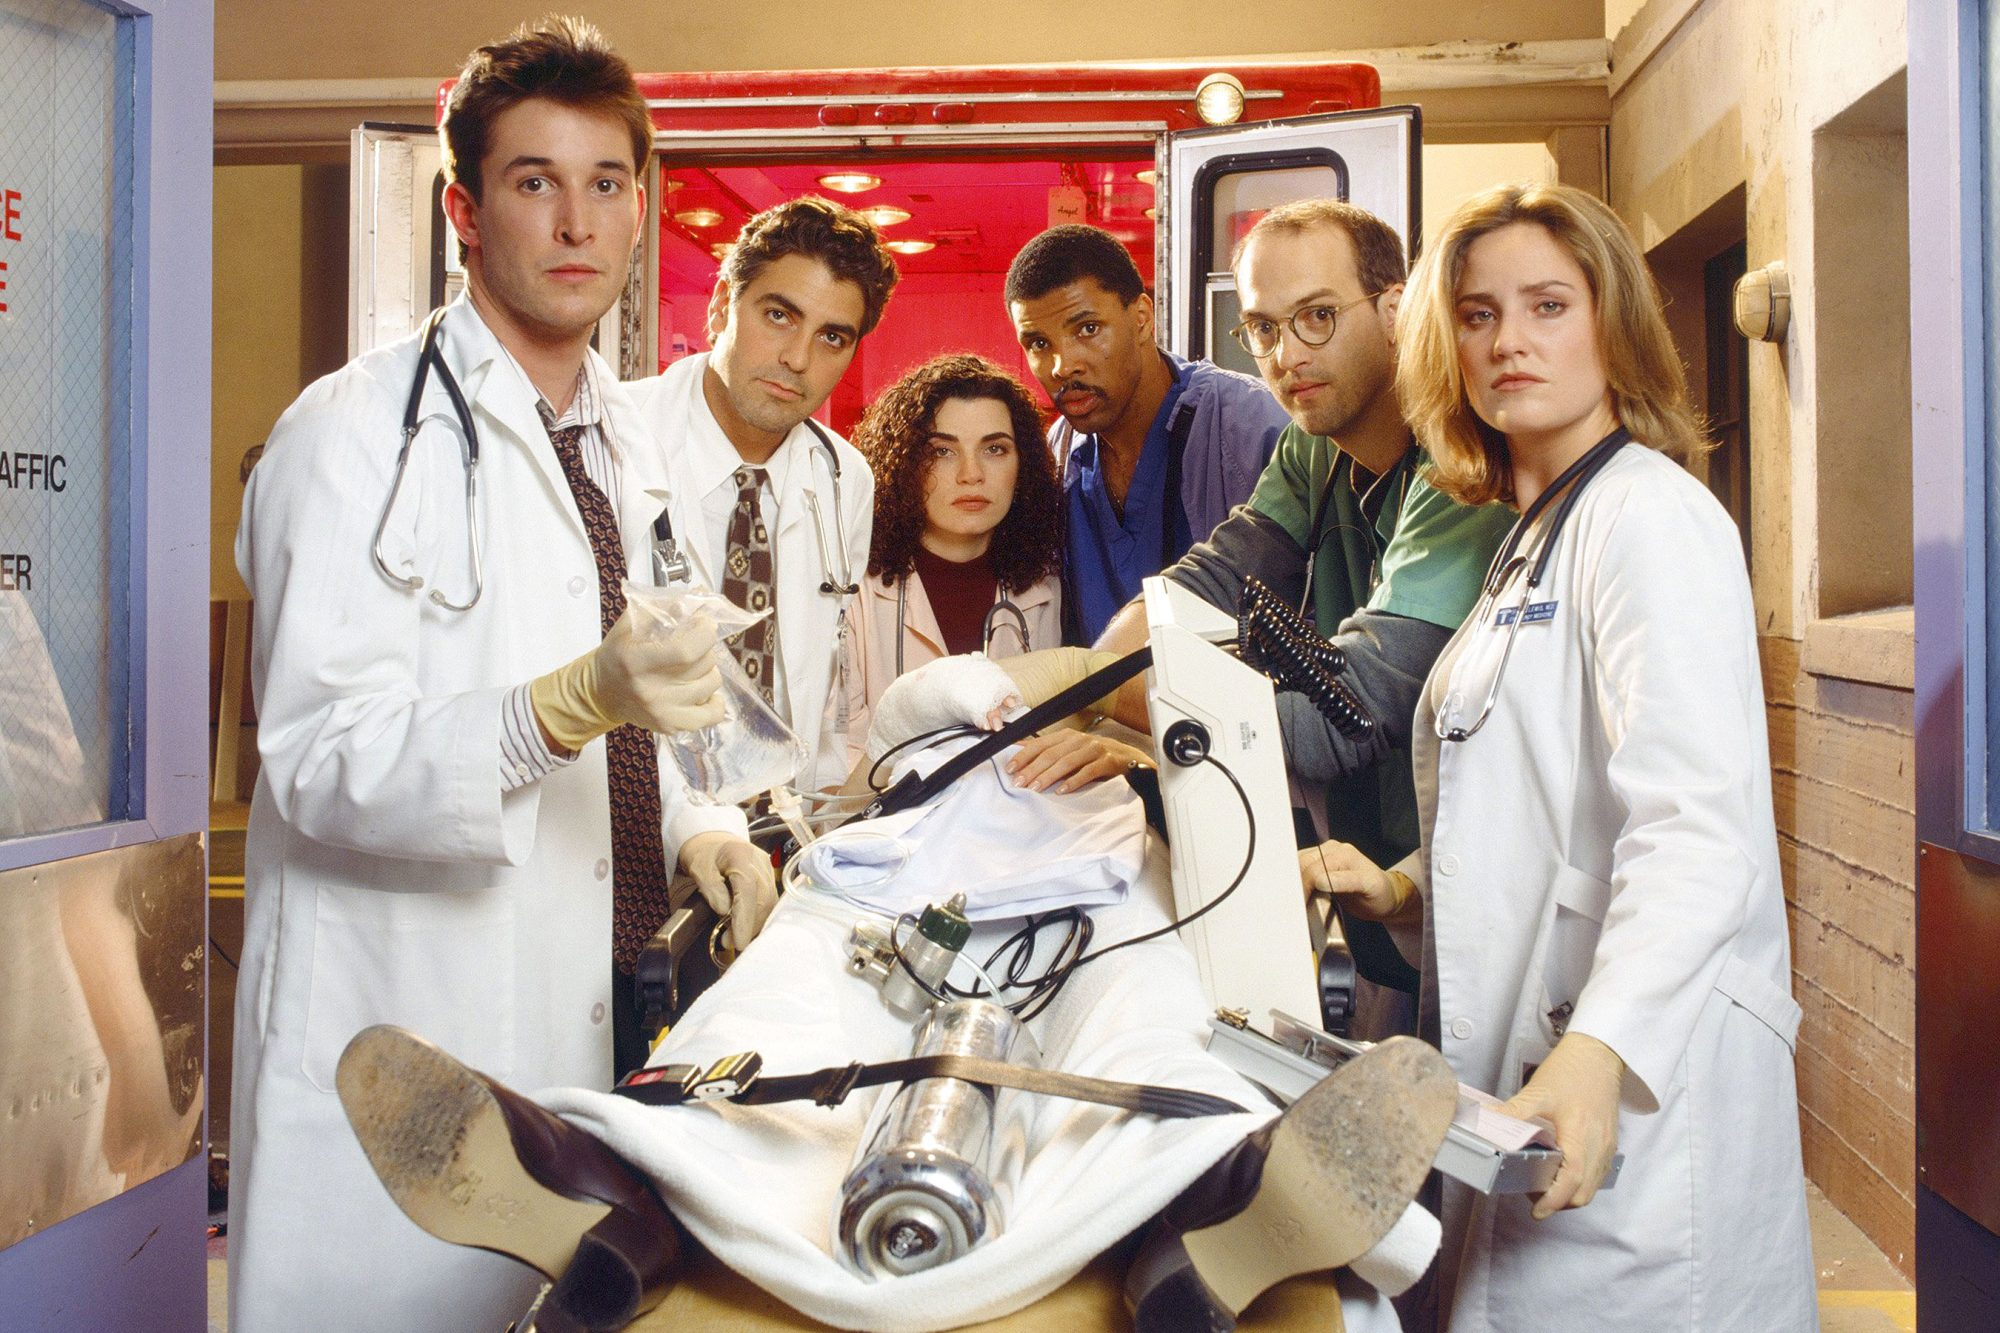 The stars of ER, then and now